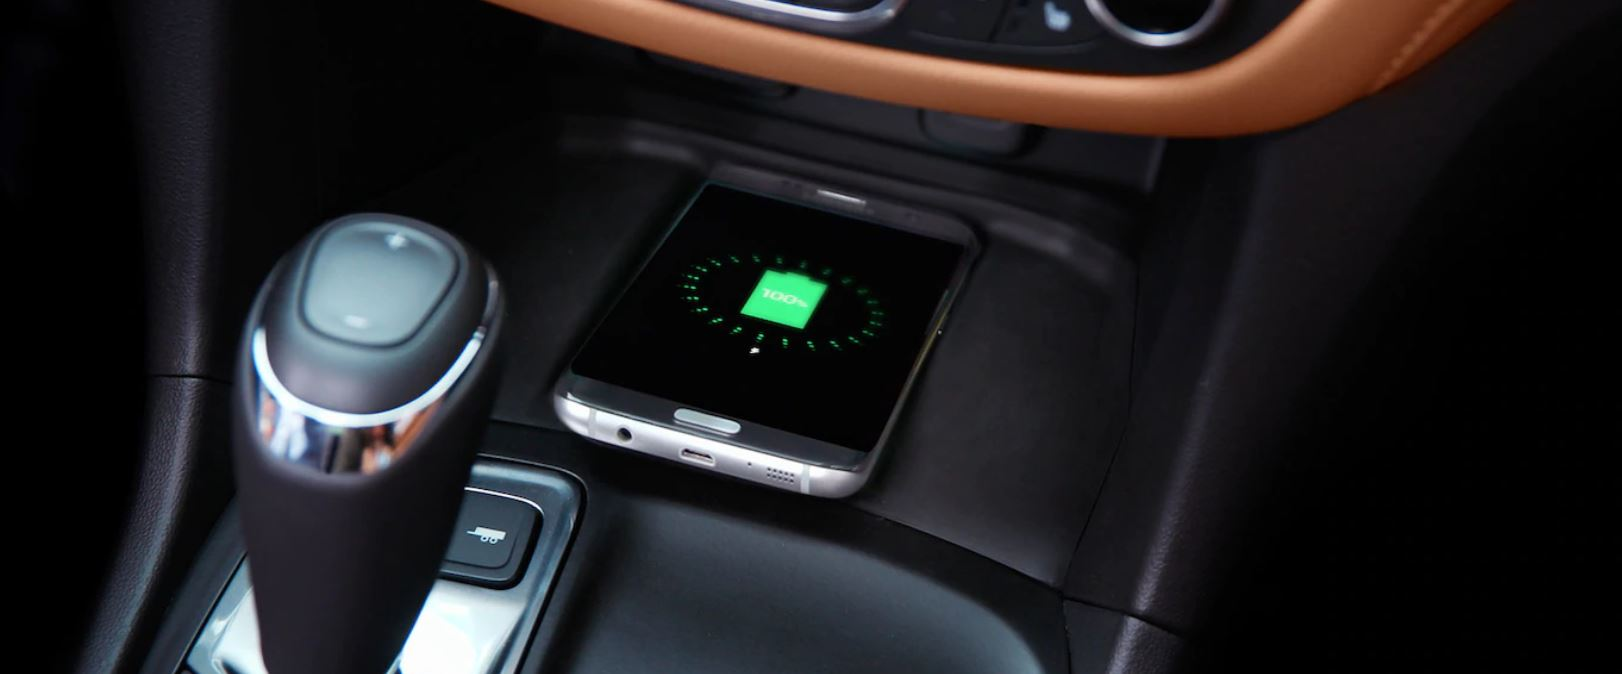 Charge Your Phone Easily in the Equinox